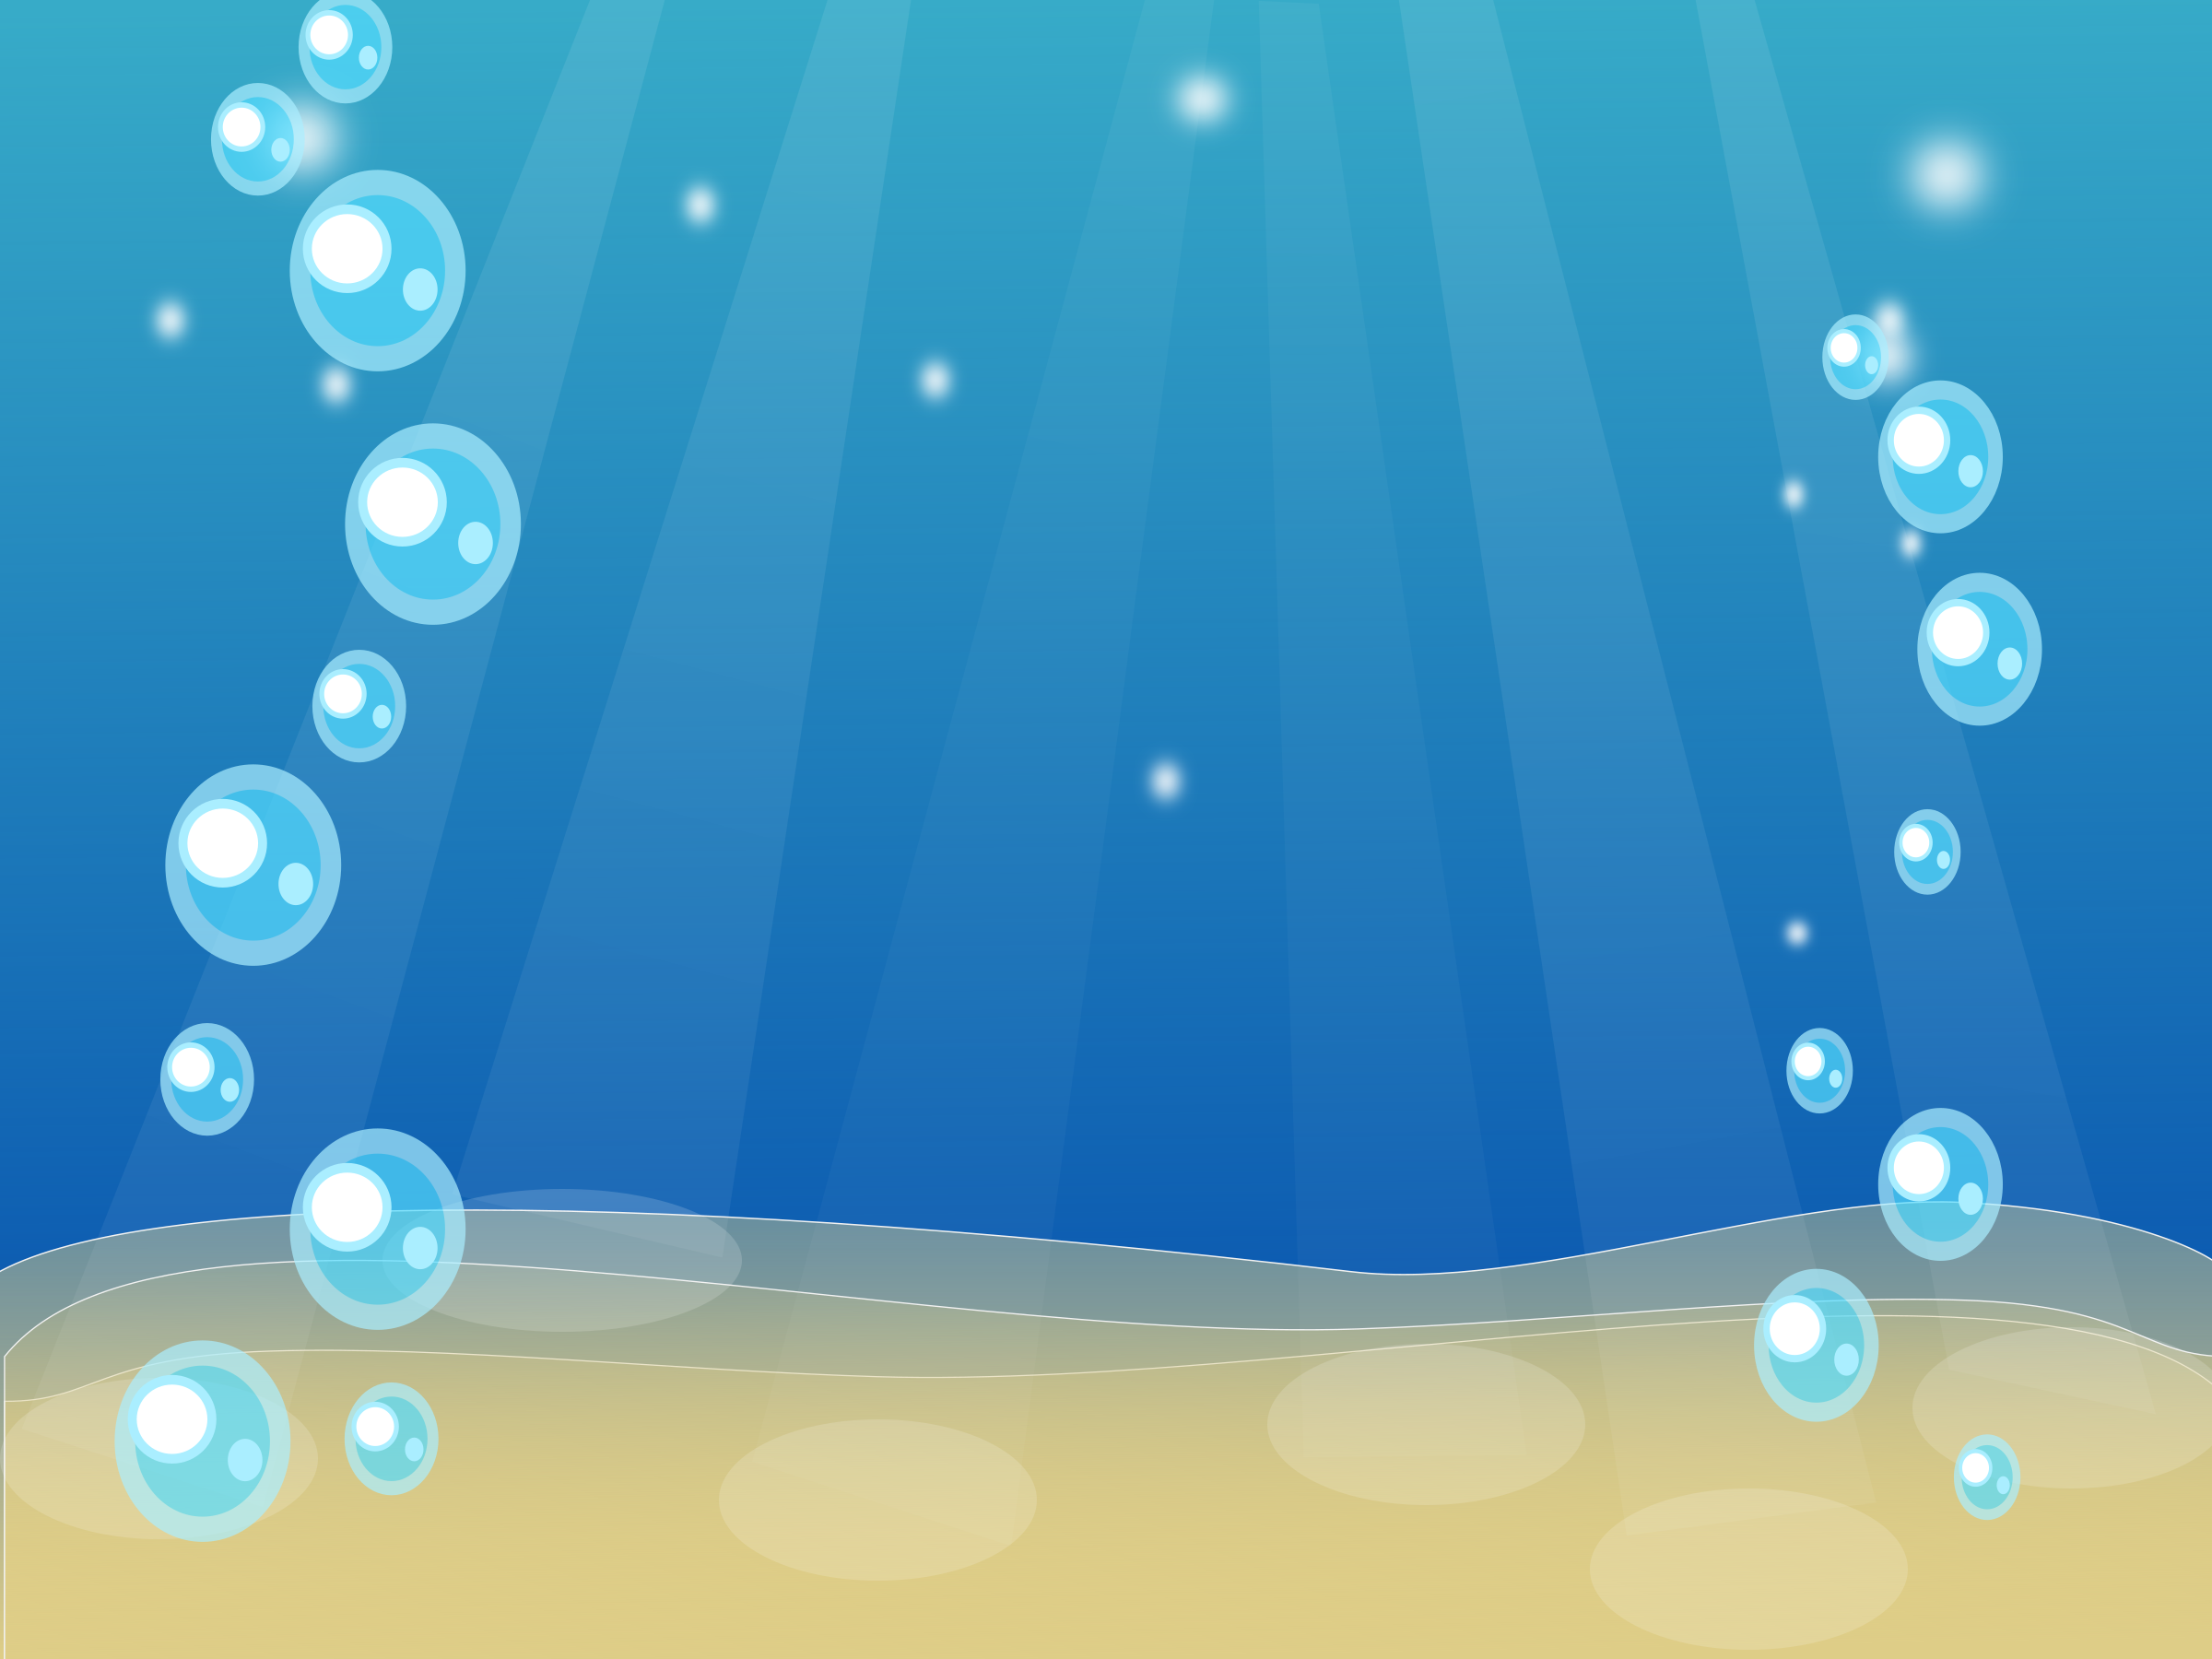 Water with bubbles clipart png black and white library Bubbles in the water vector clipart image - Free stock photo ... png black and white library